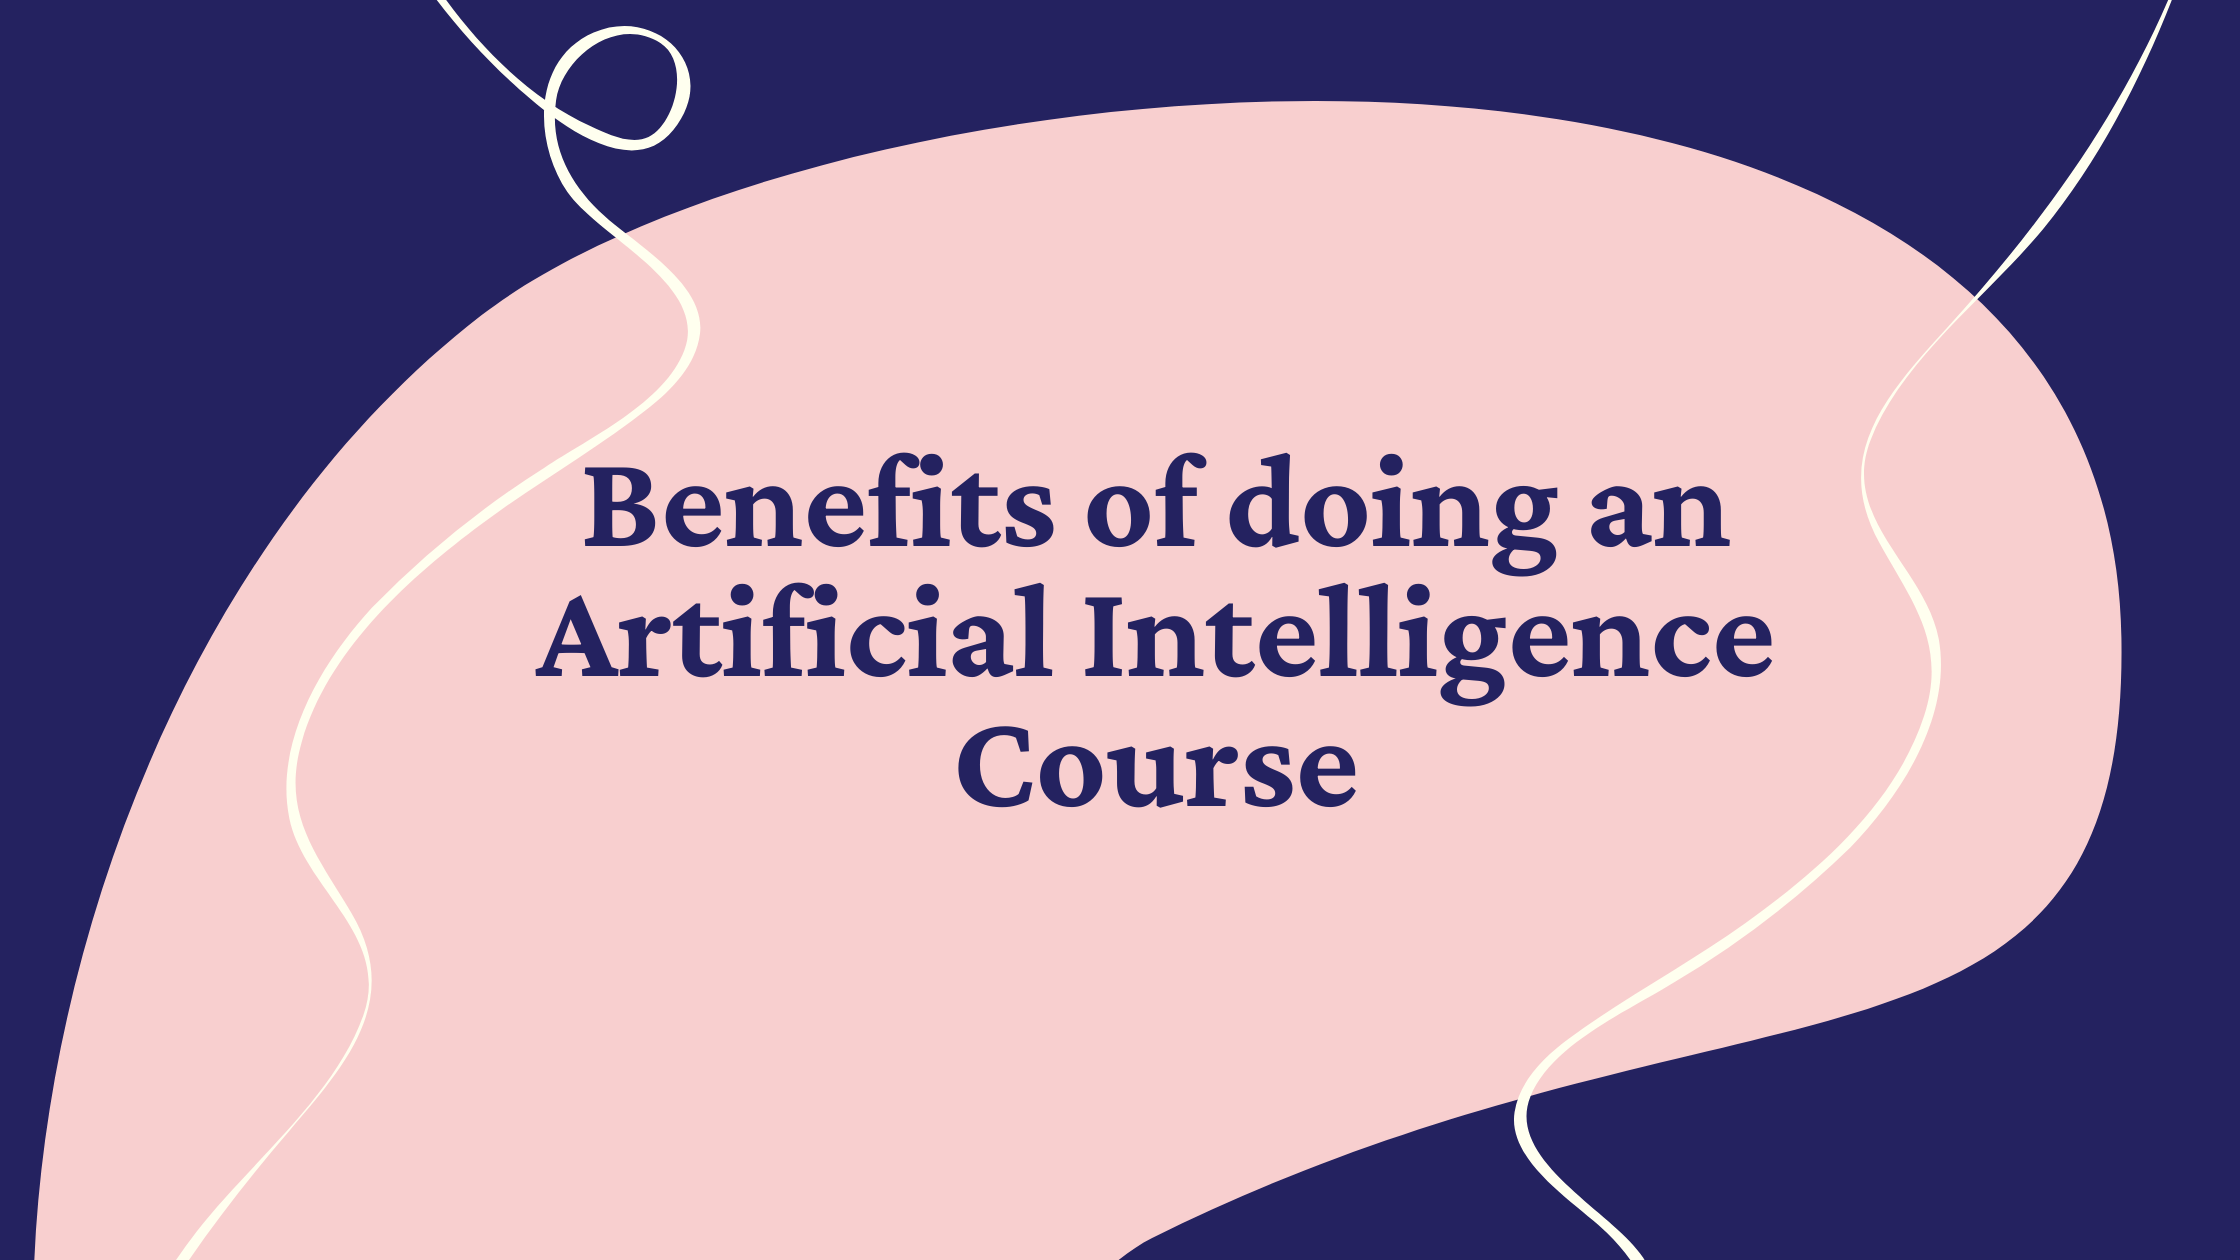 benefits of doing an artificial intelligence course